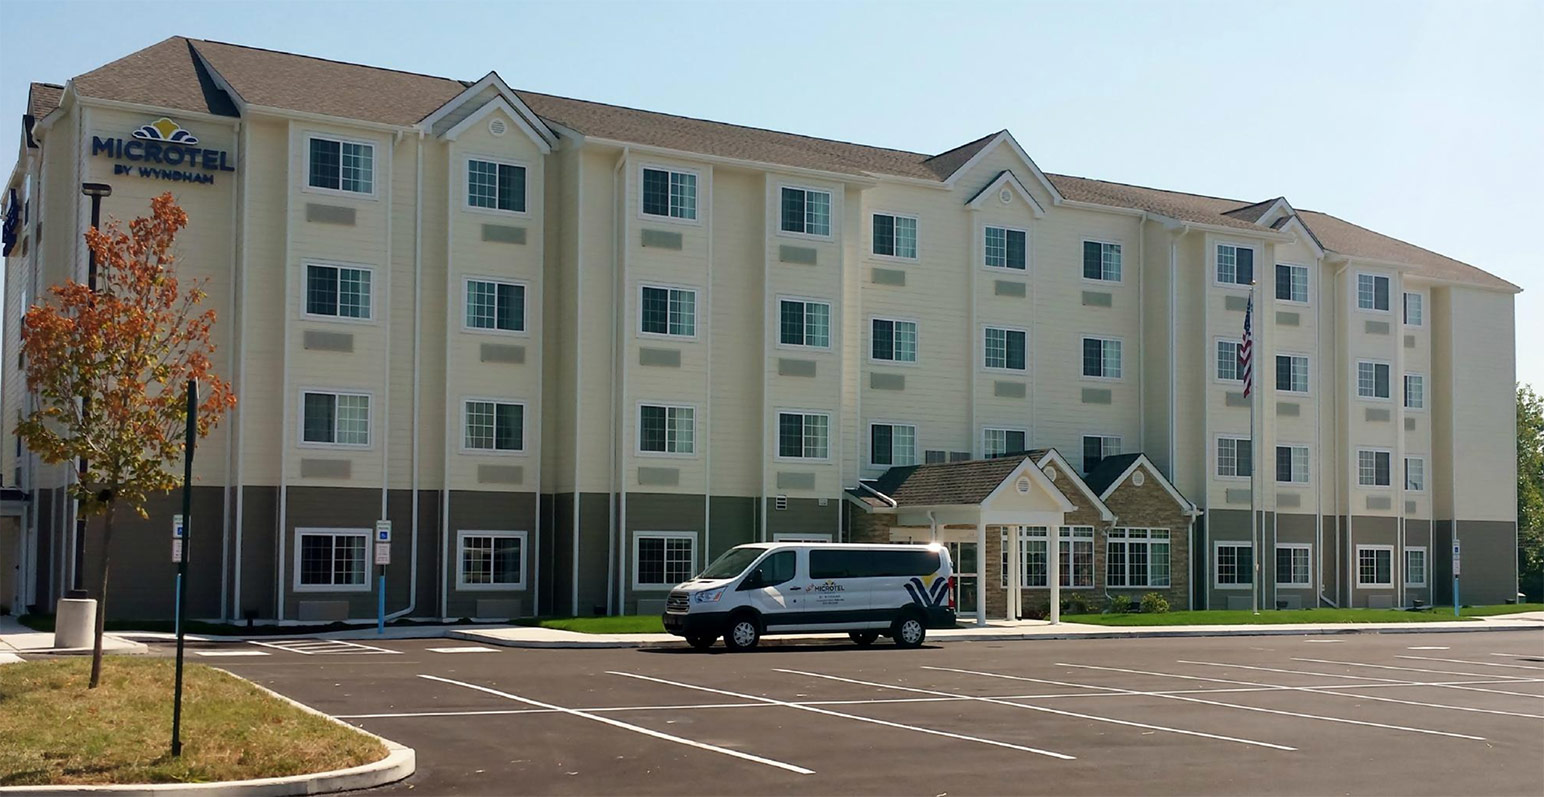 Microtel Inn & Suites Philadelphia Airport - Ridley Park